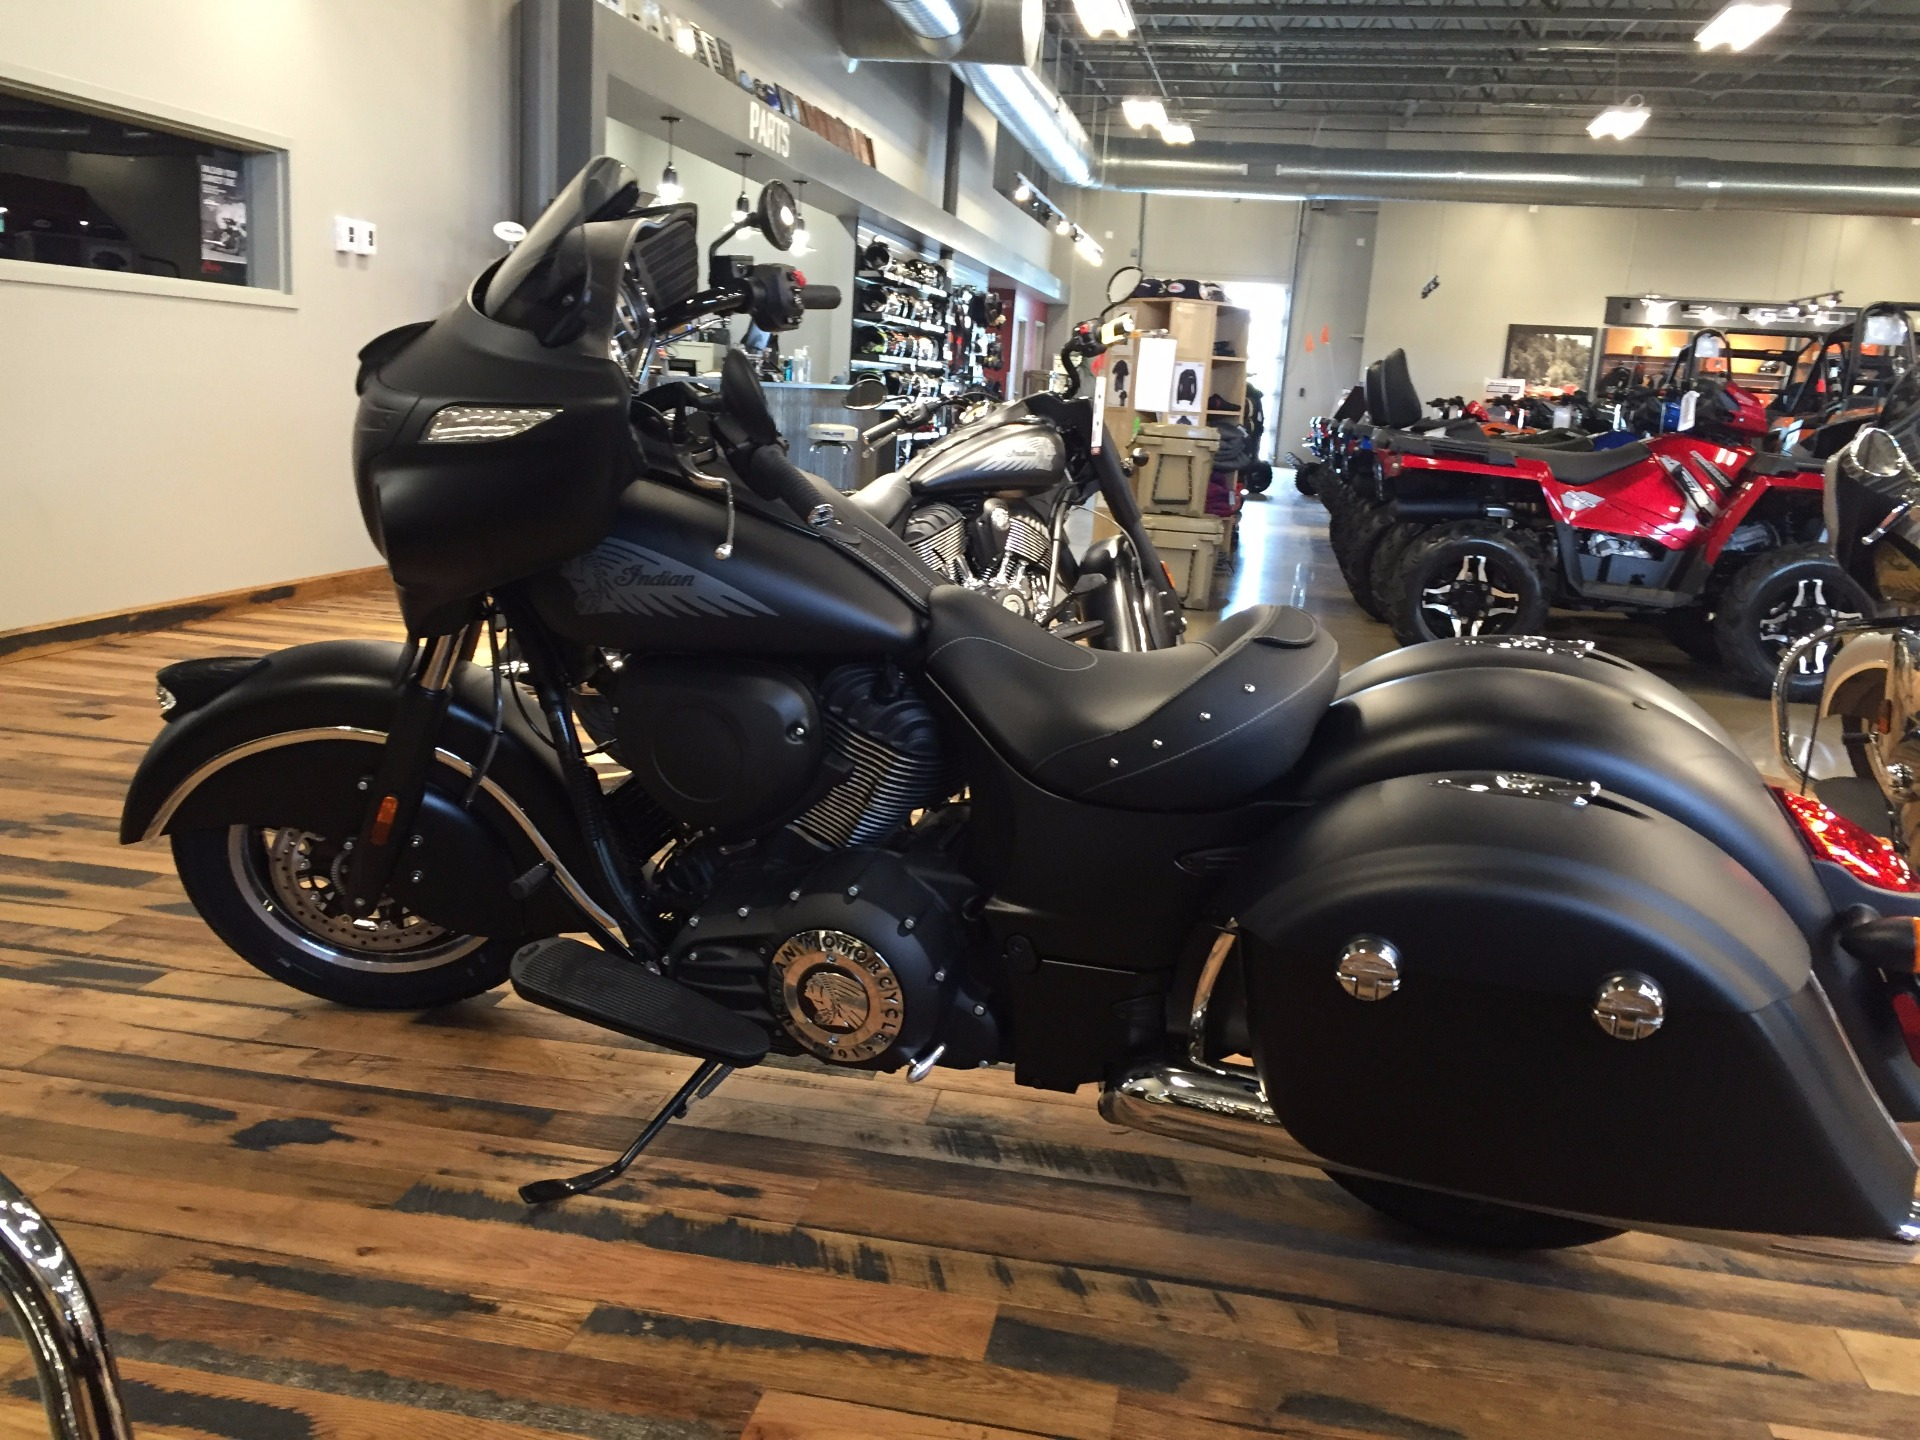 2017 indian chieftain dark horse motorcycles north canton ohio. Black Bedroom Furniture Sets. Home Design Ideas